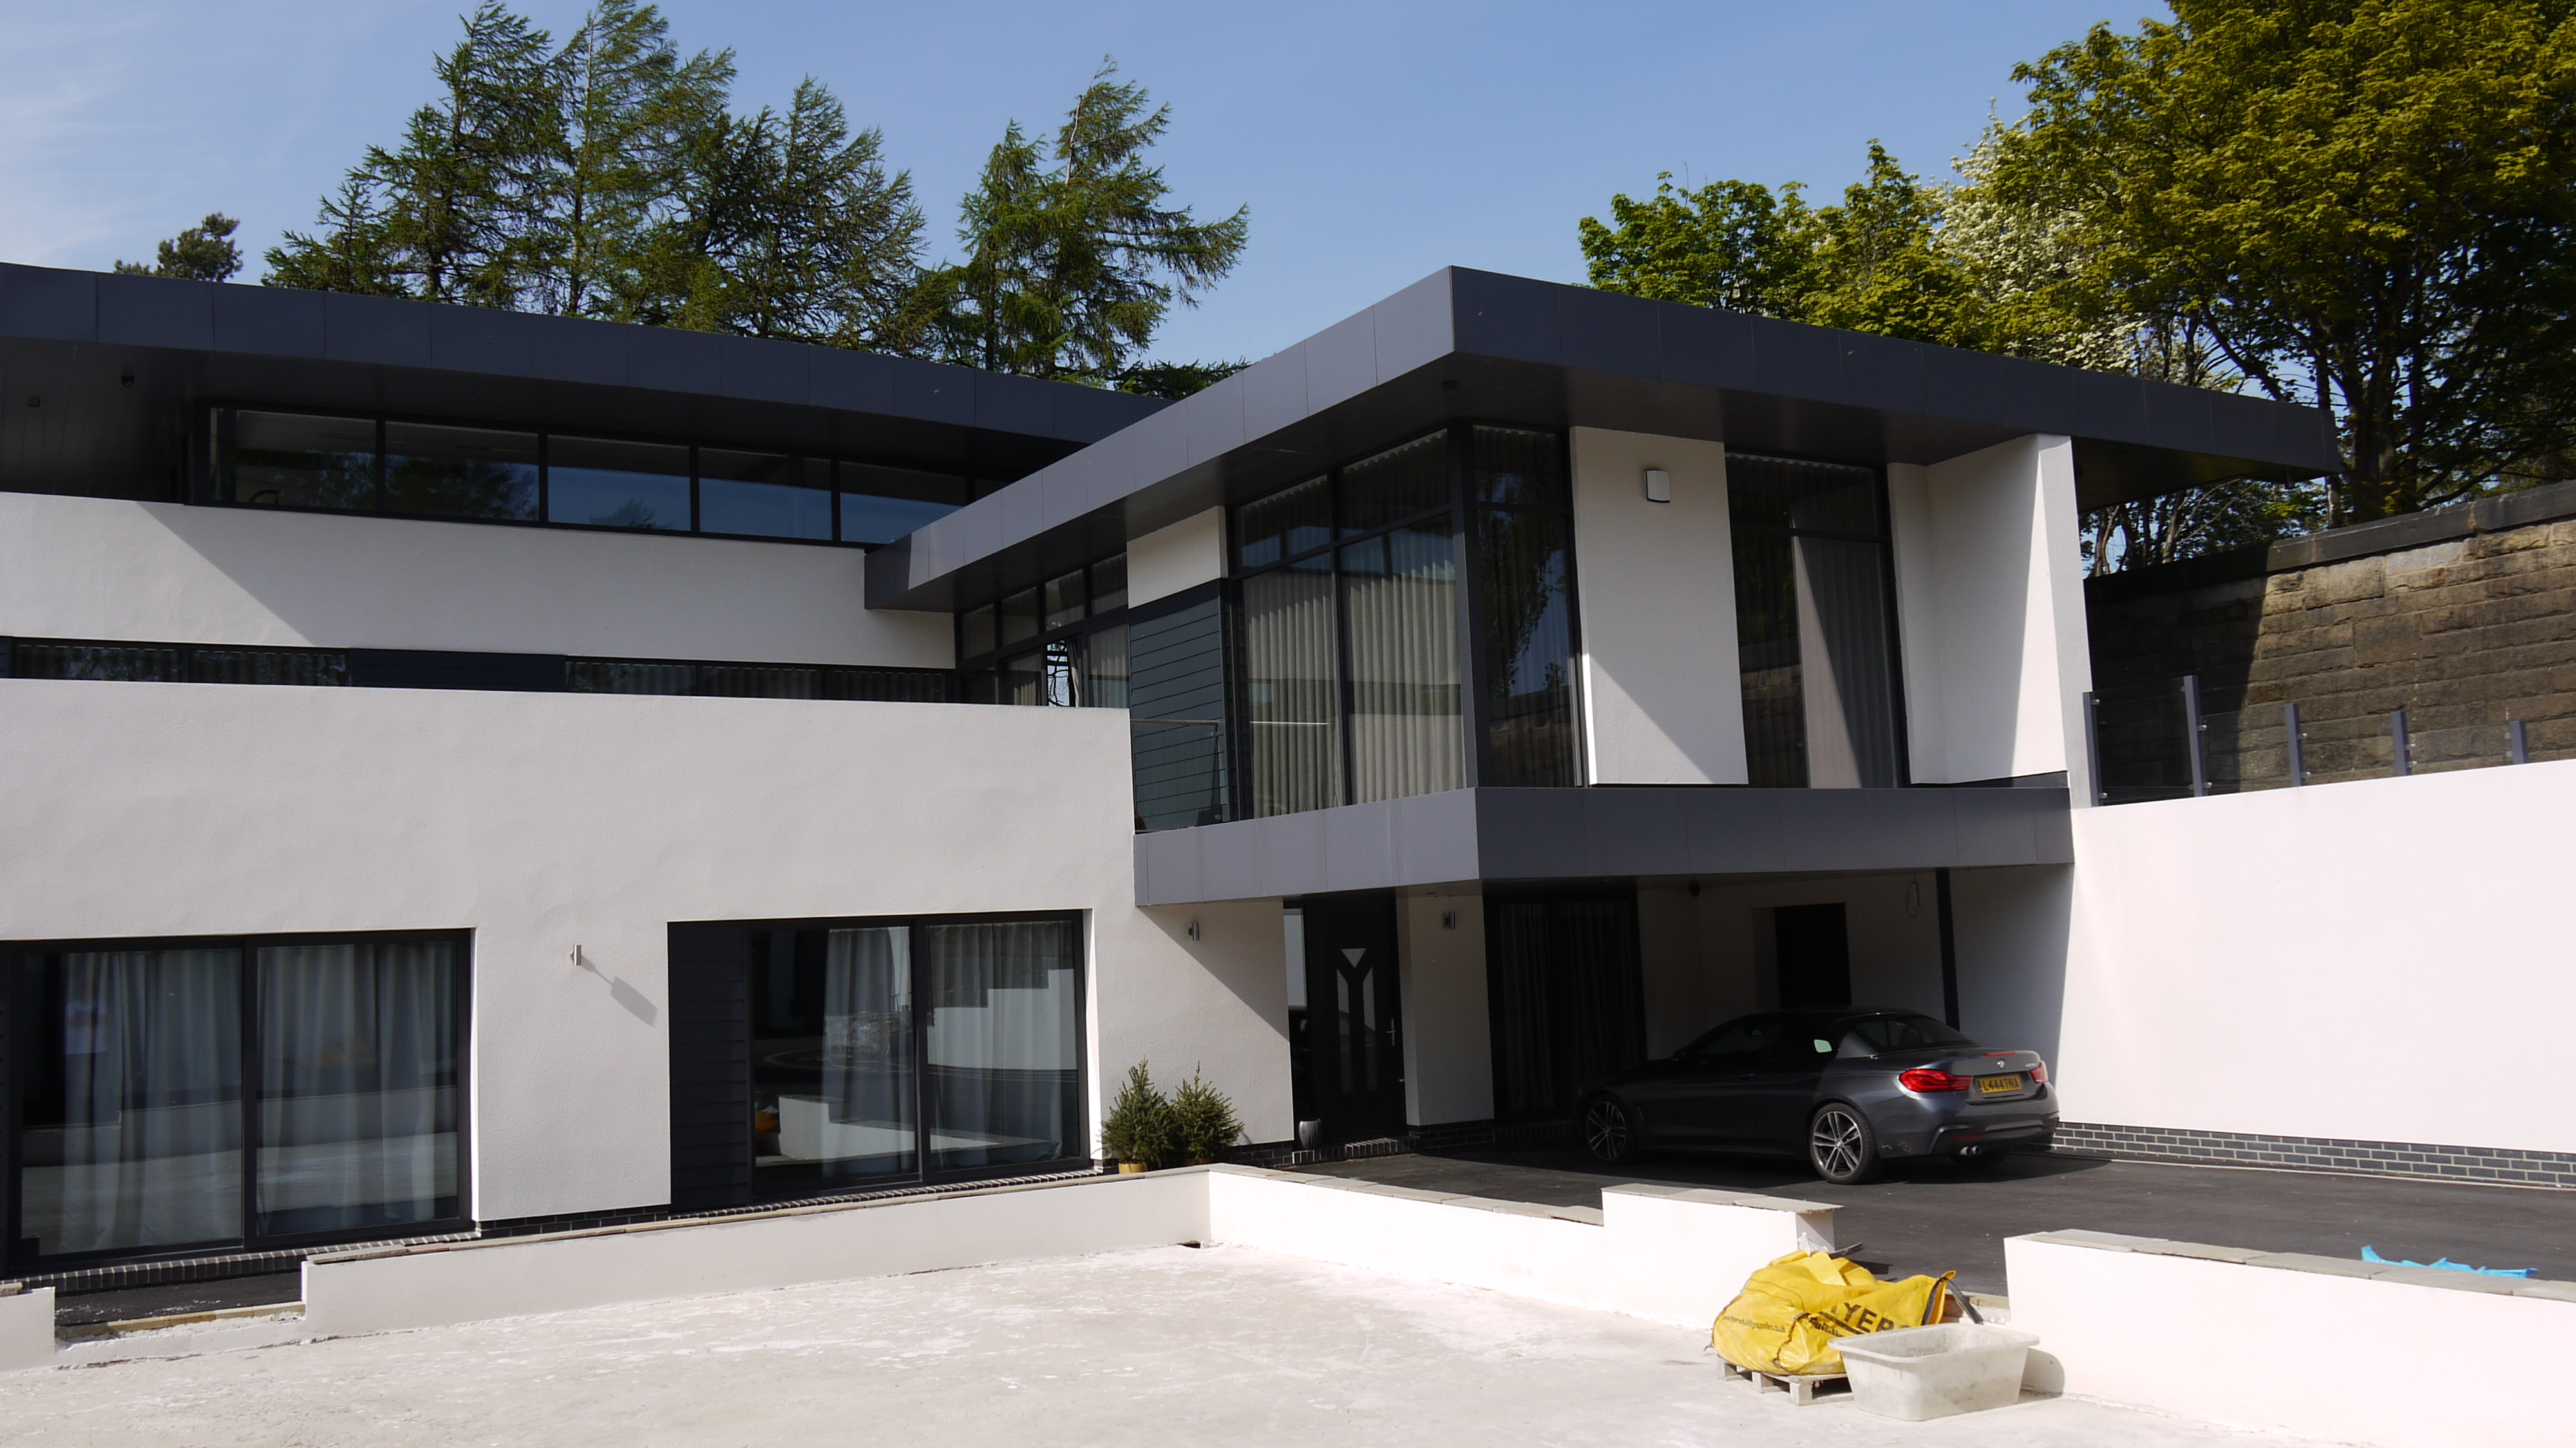 conversion of a Yorkshire water backup reservoir into a bespoke contemporary residential property